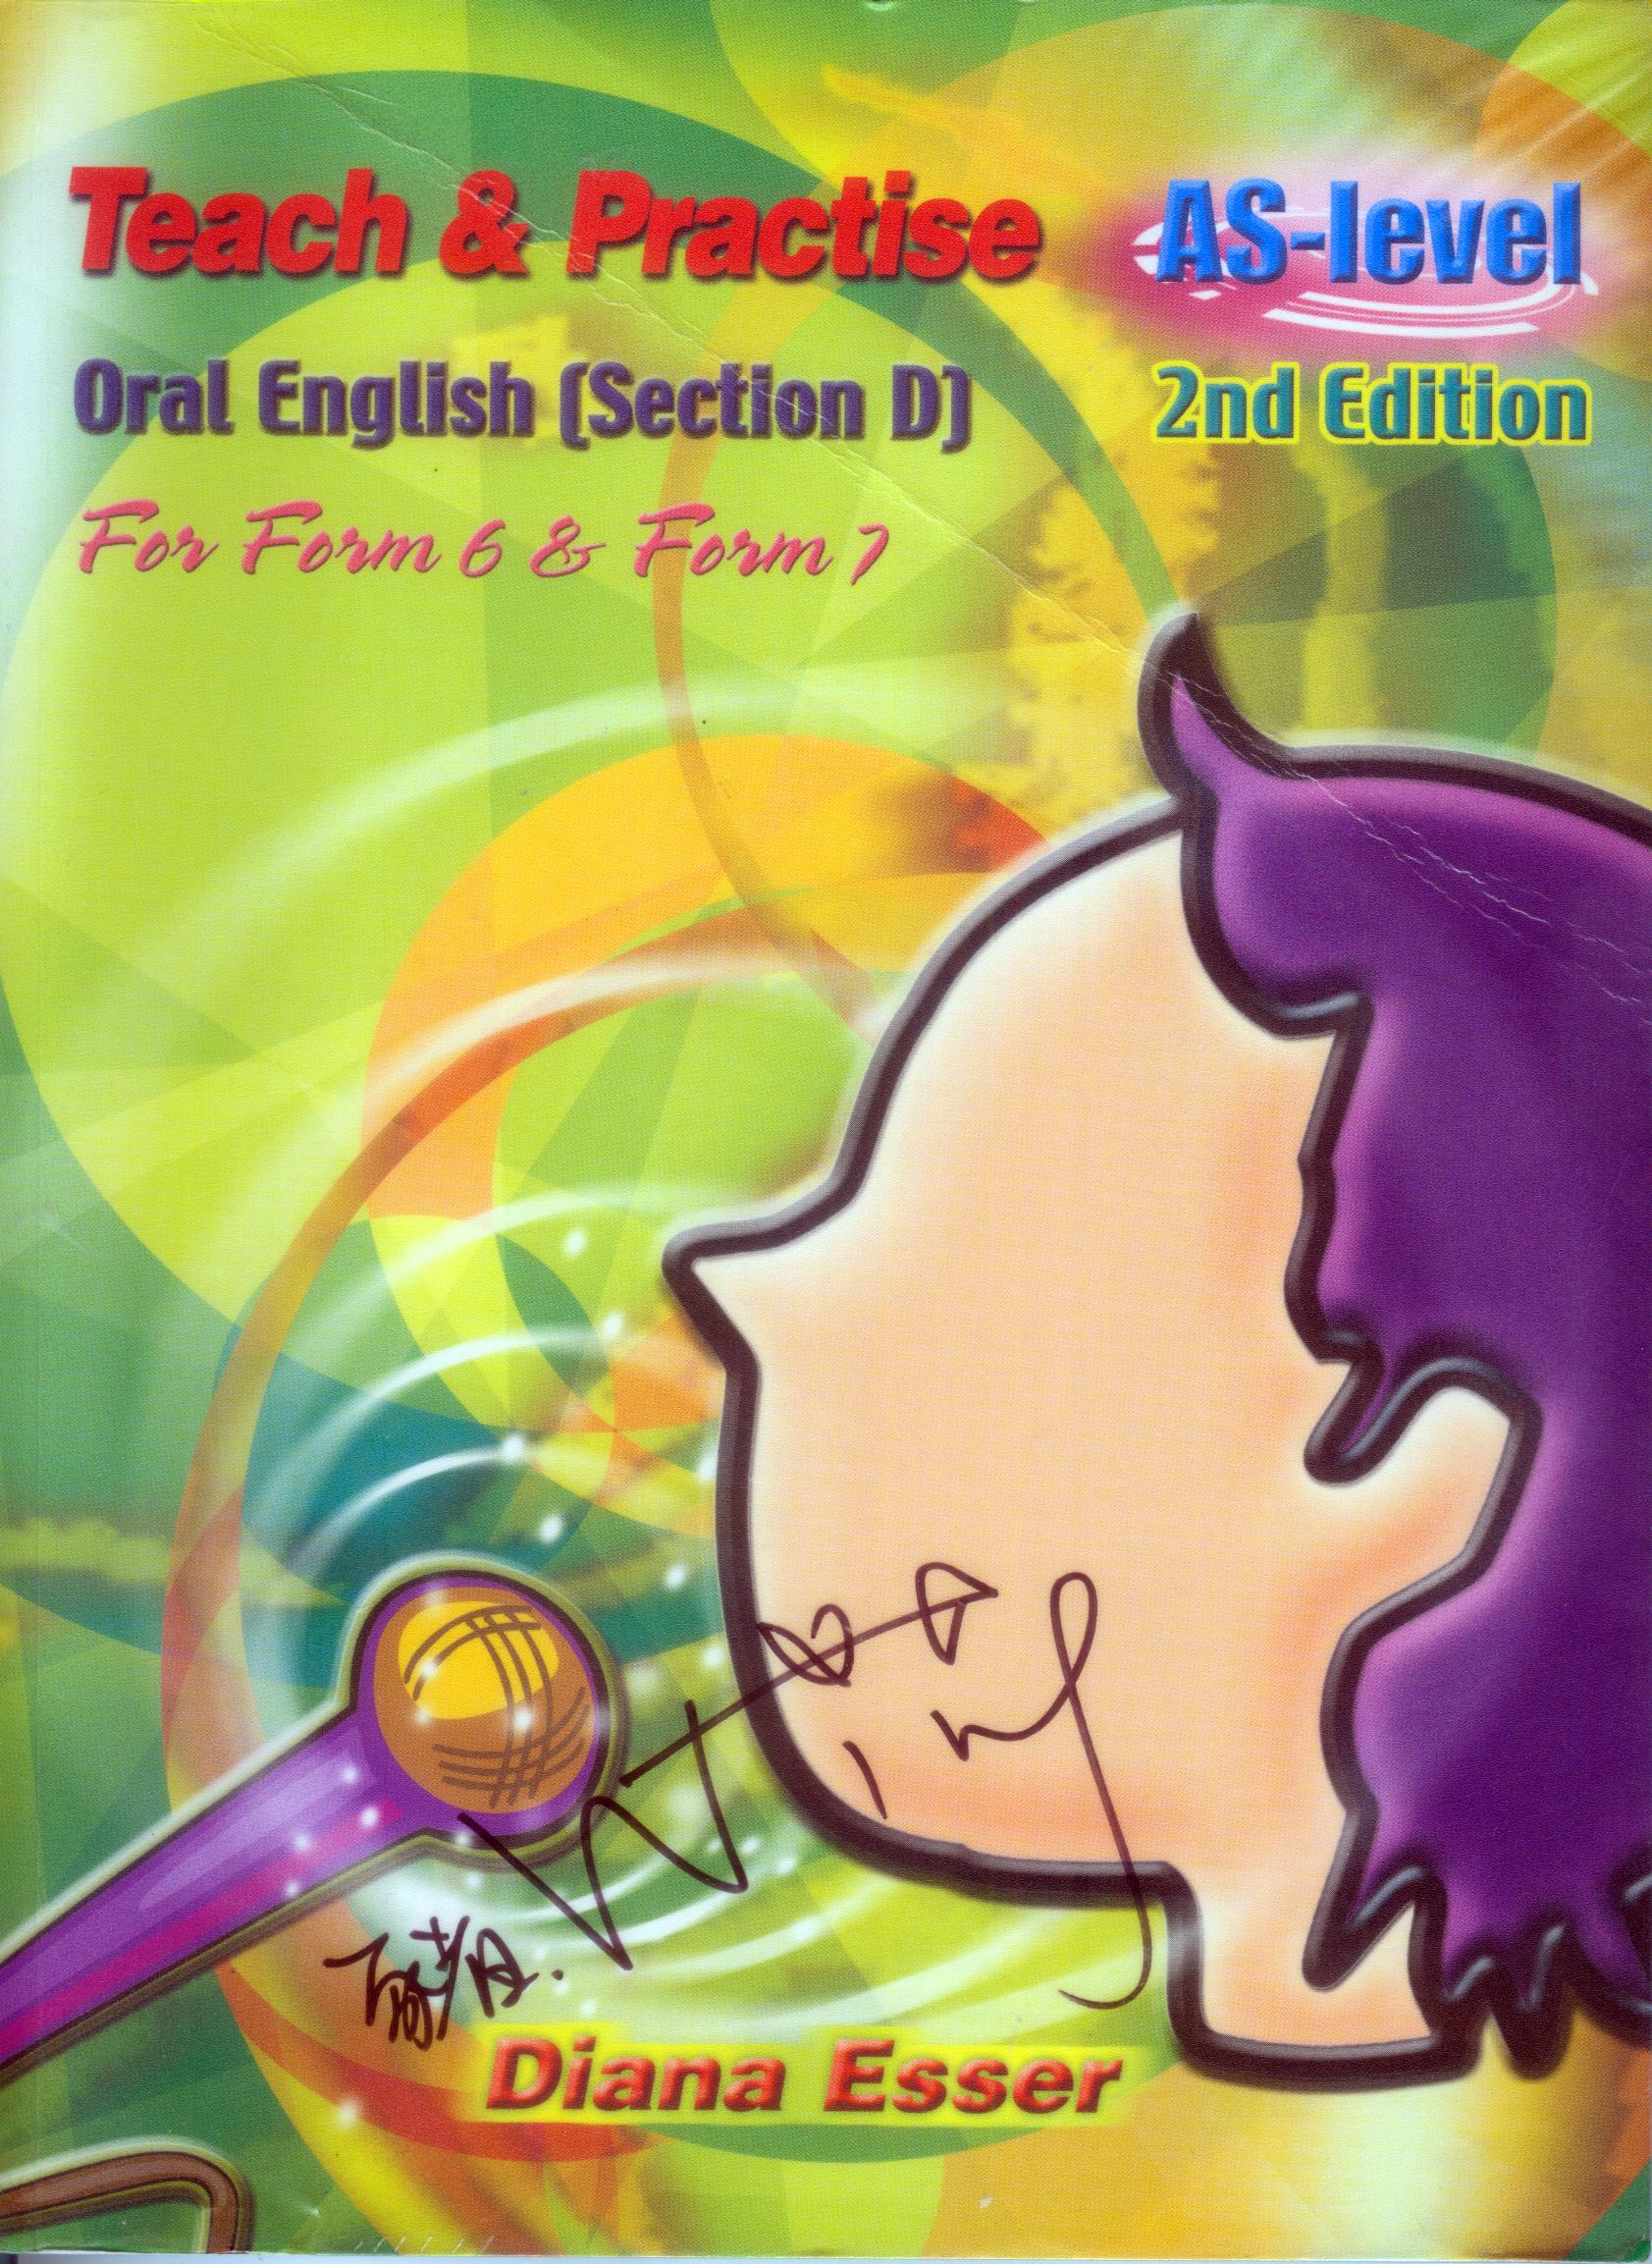 Teach and Practise: AS/L Oral English F.6 & F.7 (Section D)